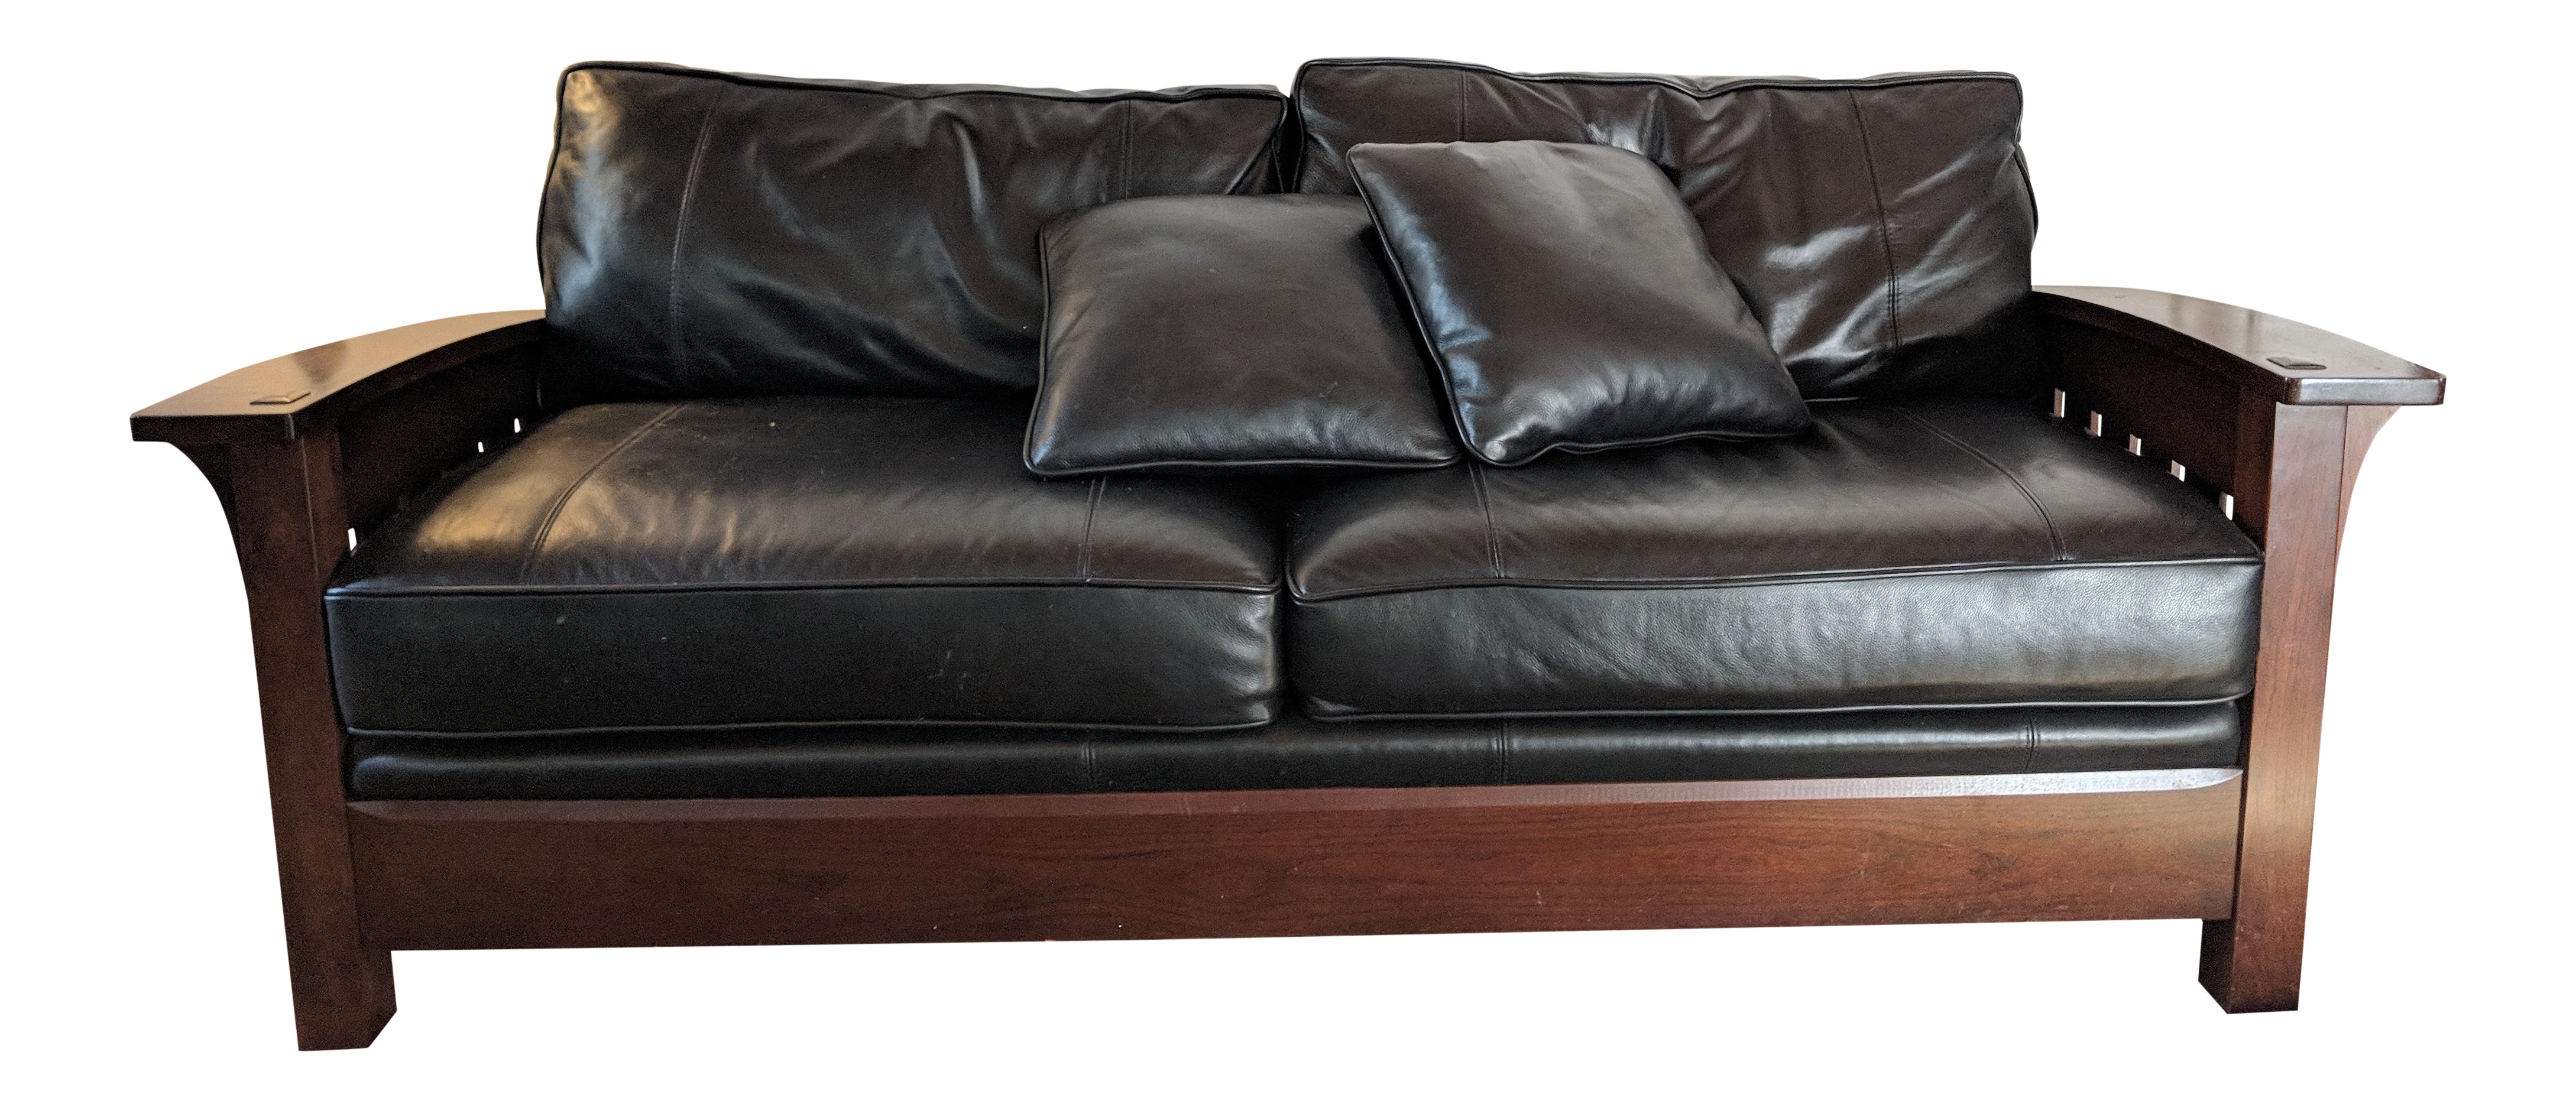 Superieur Stickley Orchard St. Black Leather Cherrywood Couch